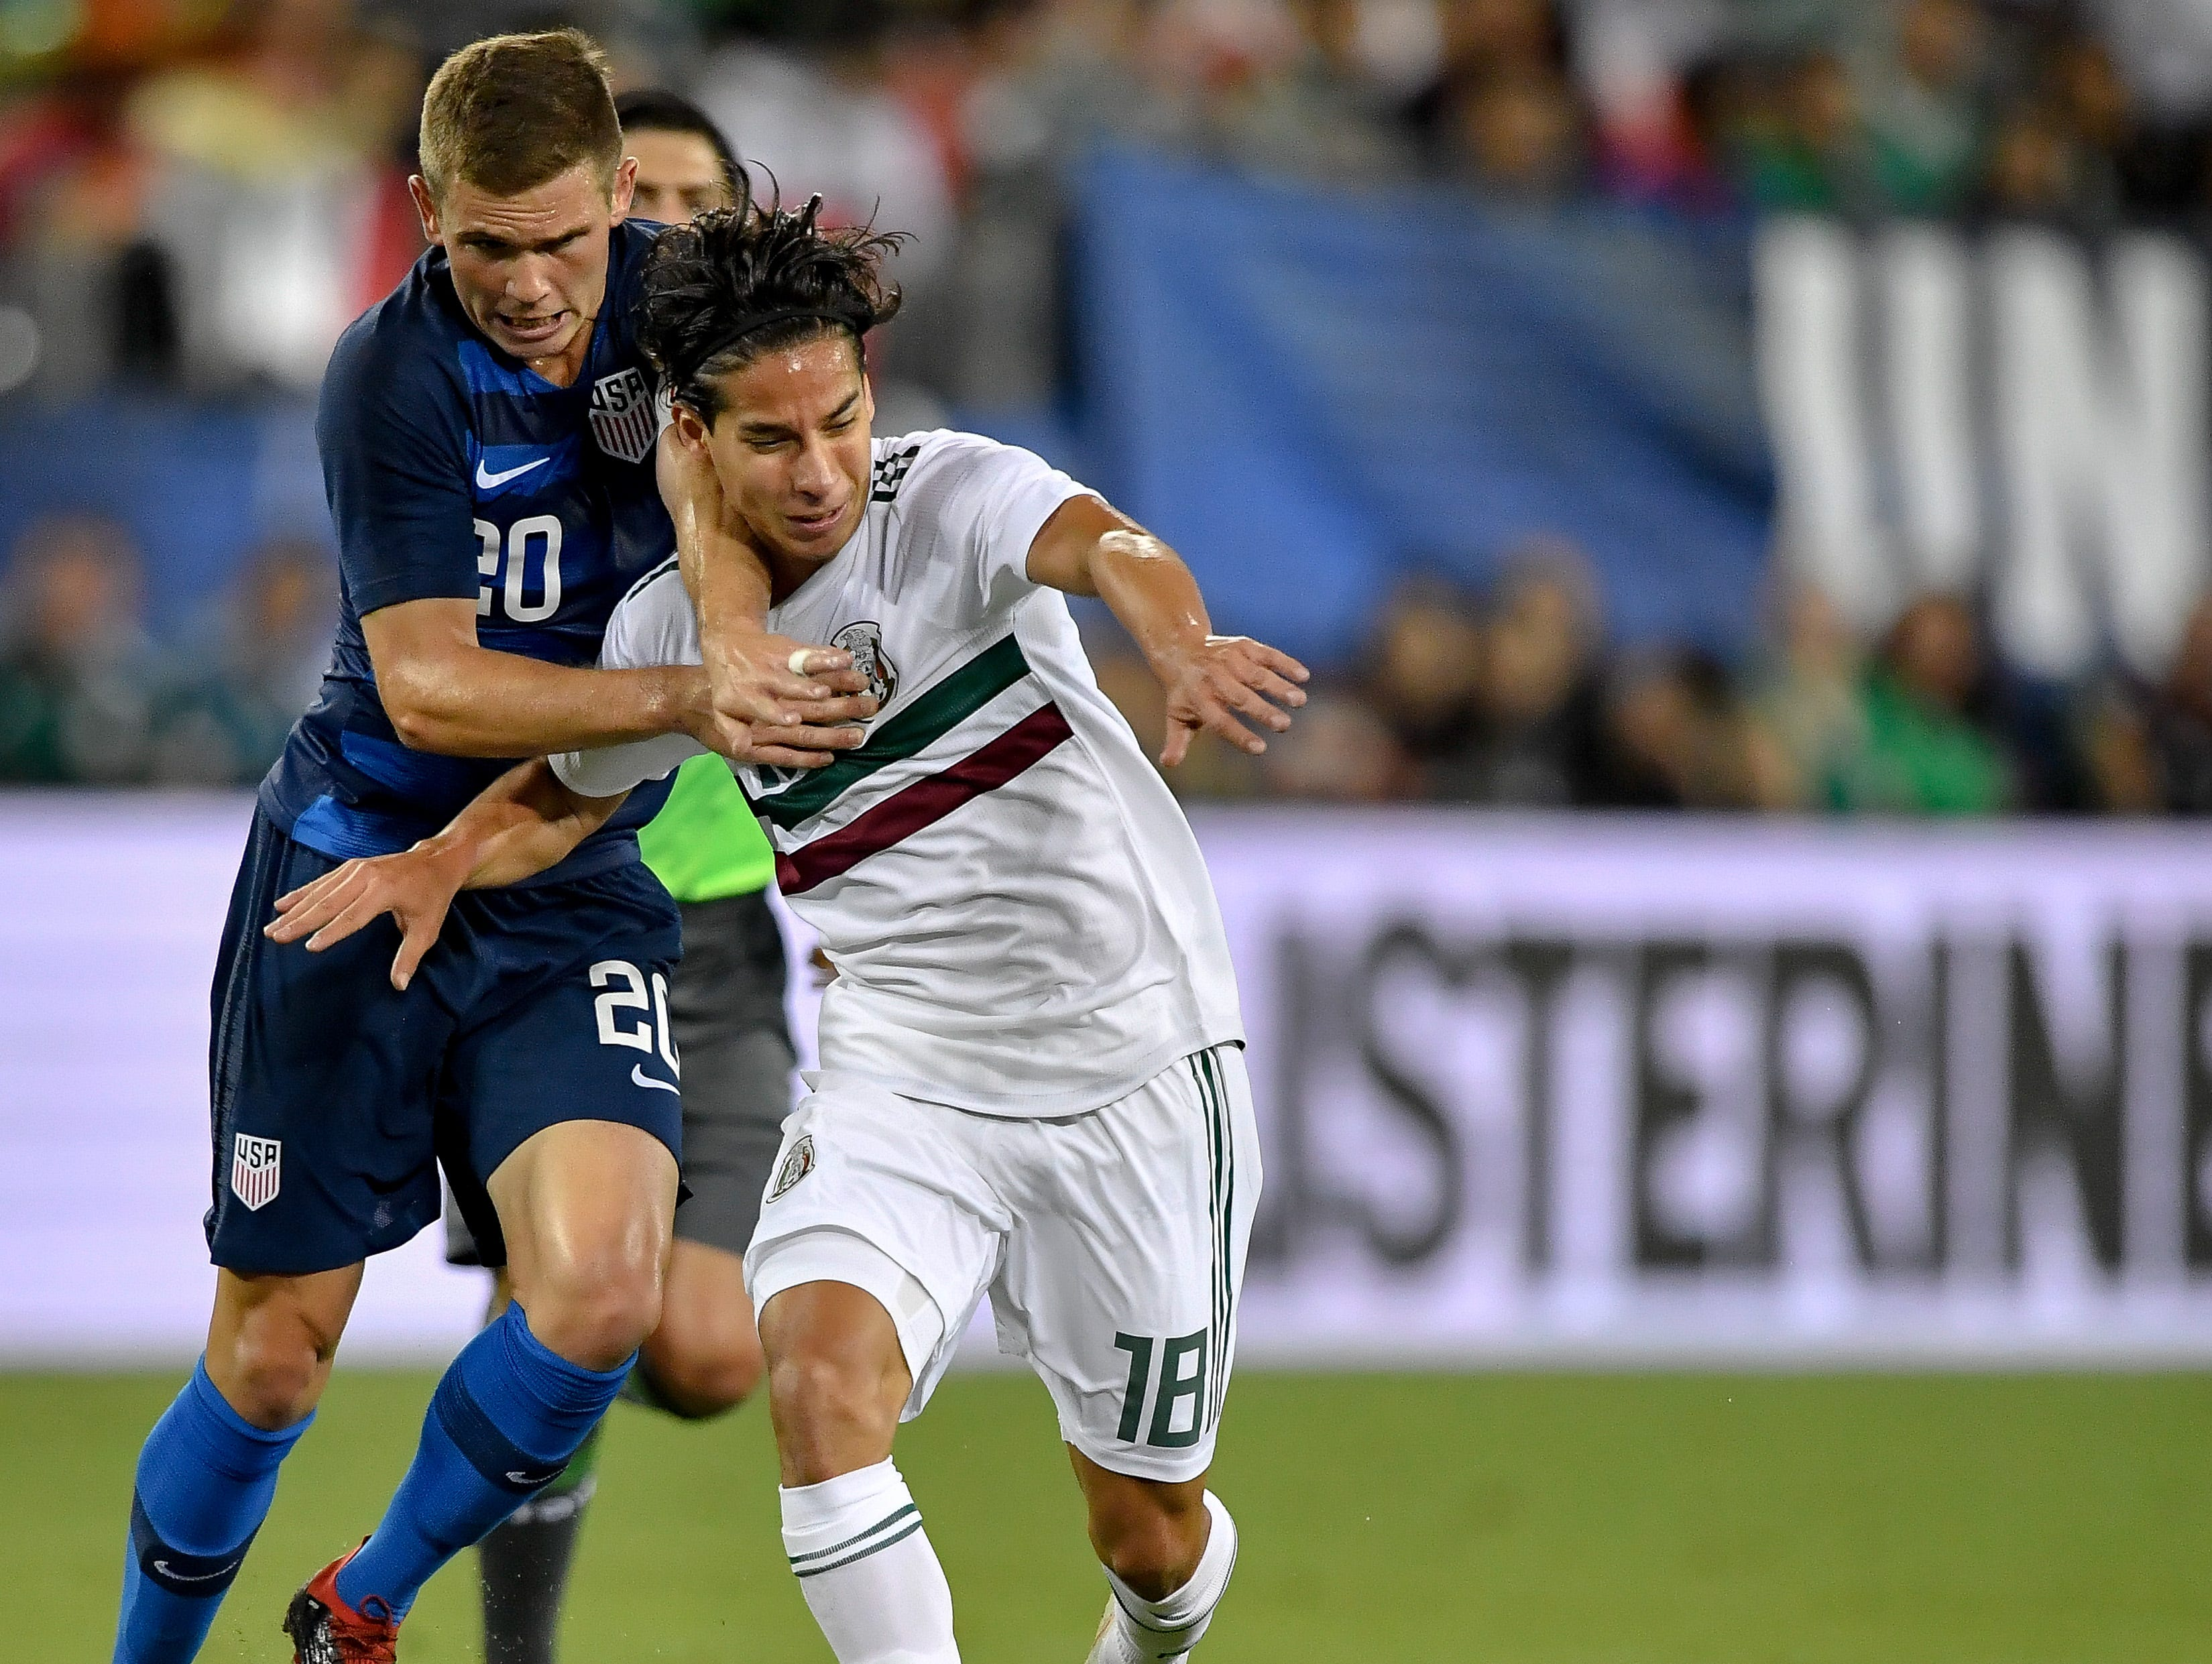 USA midfielder Wil Trapp (20) chases the ball with Mexico midfielder Diego Lainez (18) during the first half at Nissan Stadium in Nashville, Tenn., Tuesday, Sept. 11, 2018.